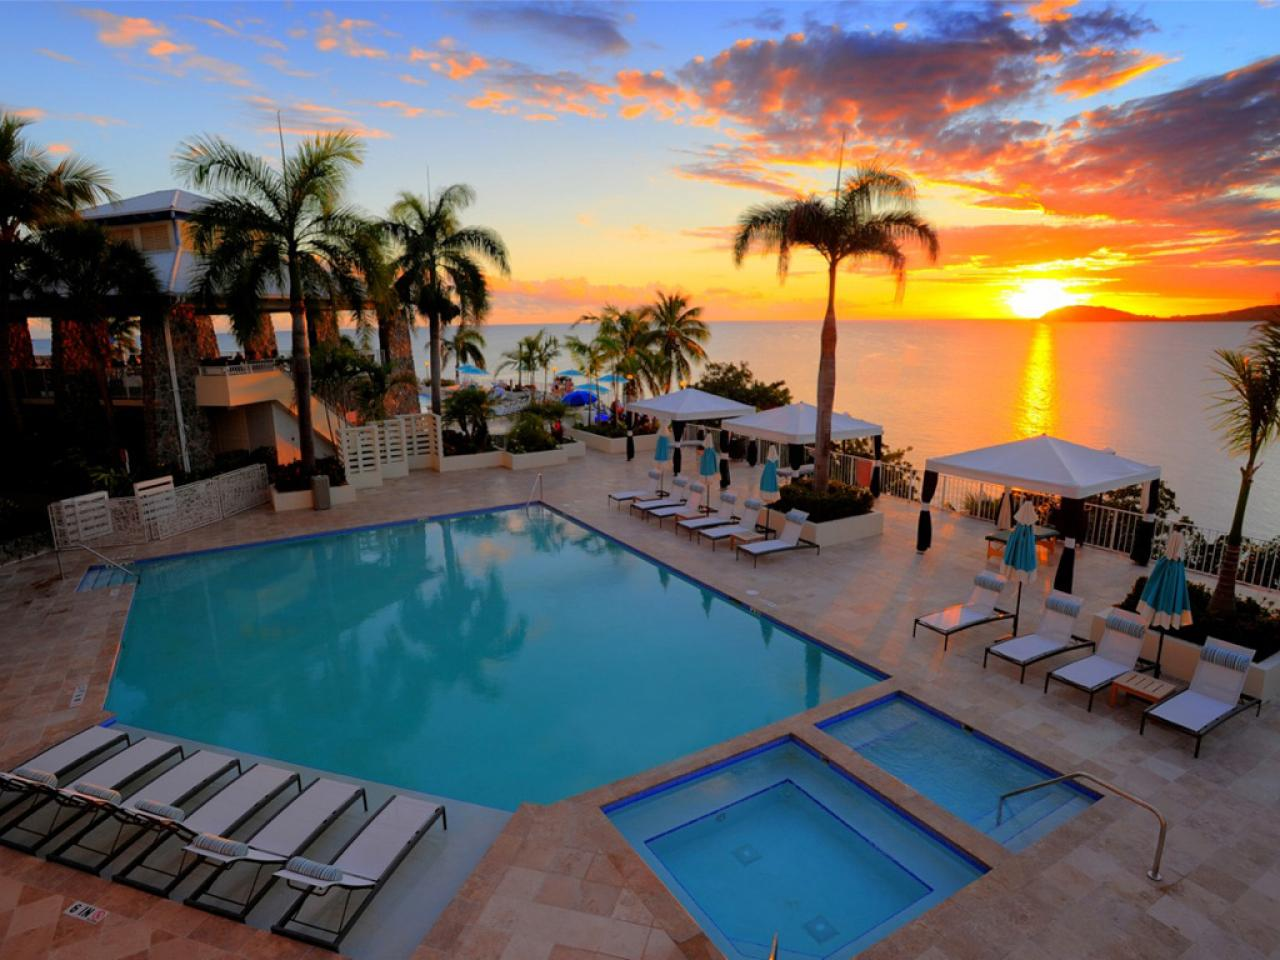 Resorts In Virgin Islands With Private Pools